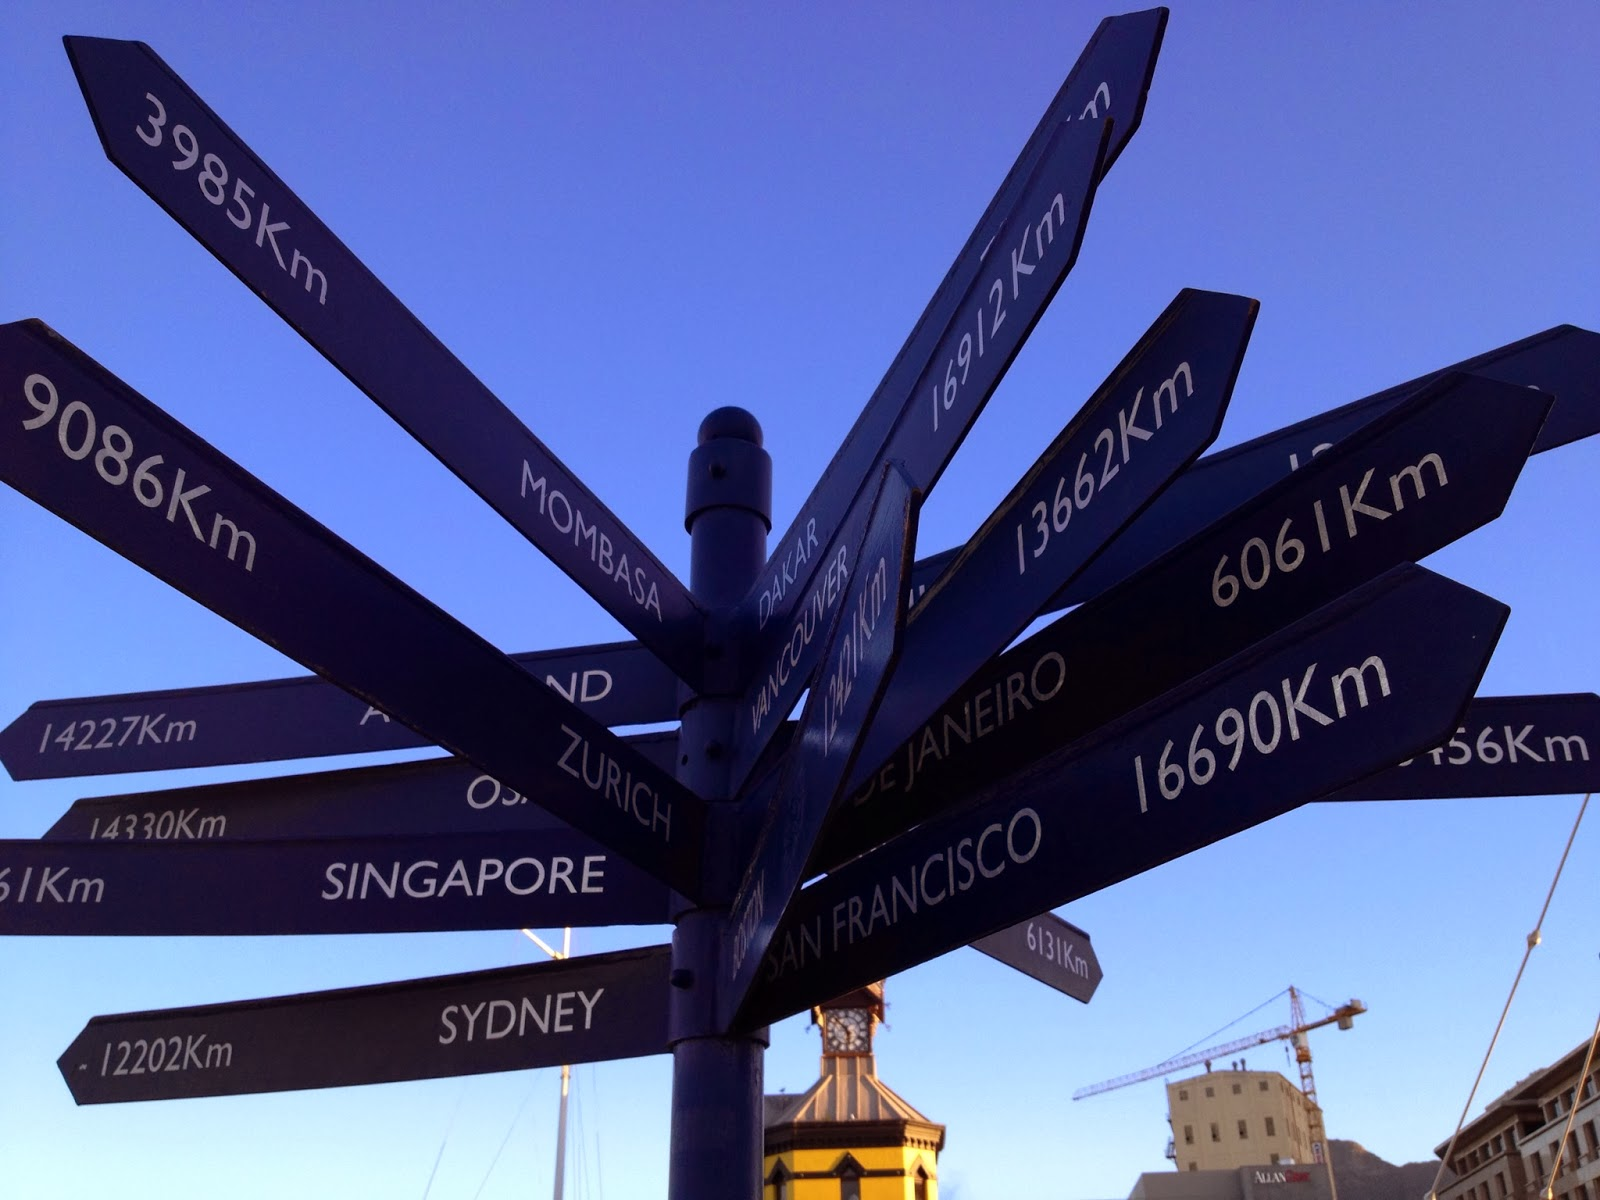 Cape Town - Cool directional arrow signs pointing to different destinations in the world